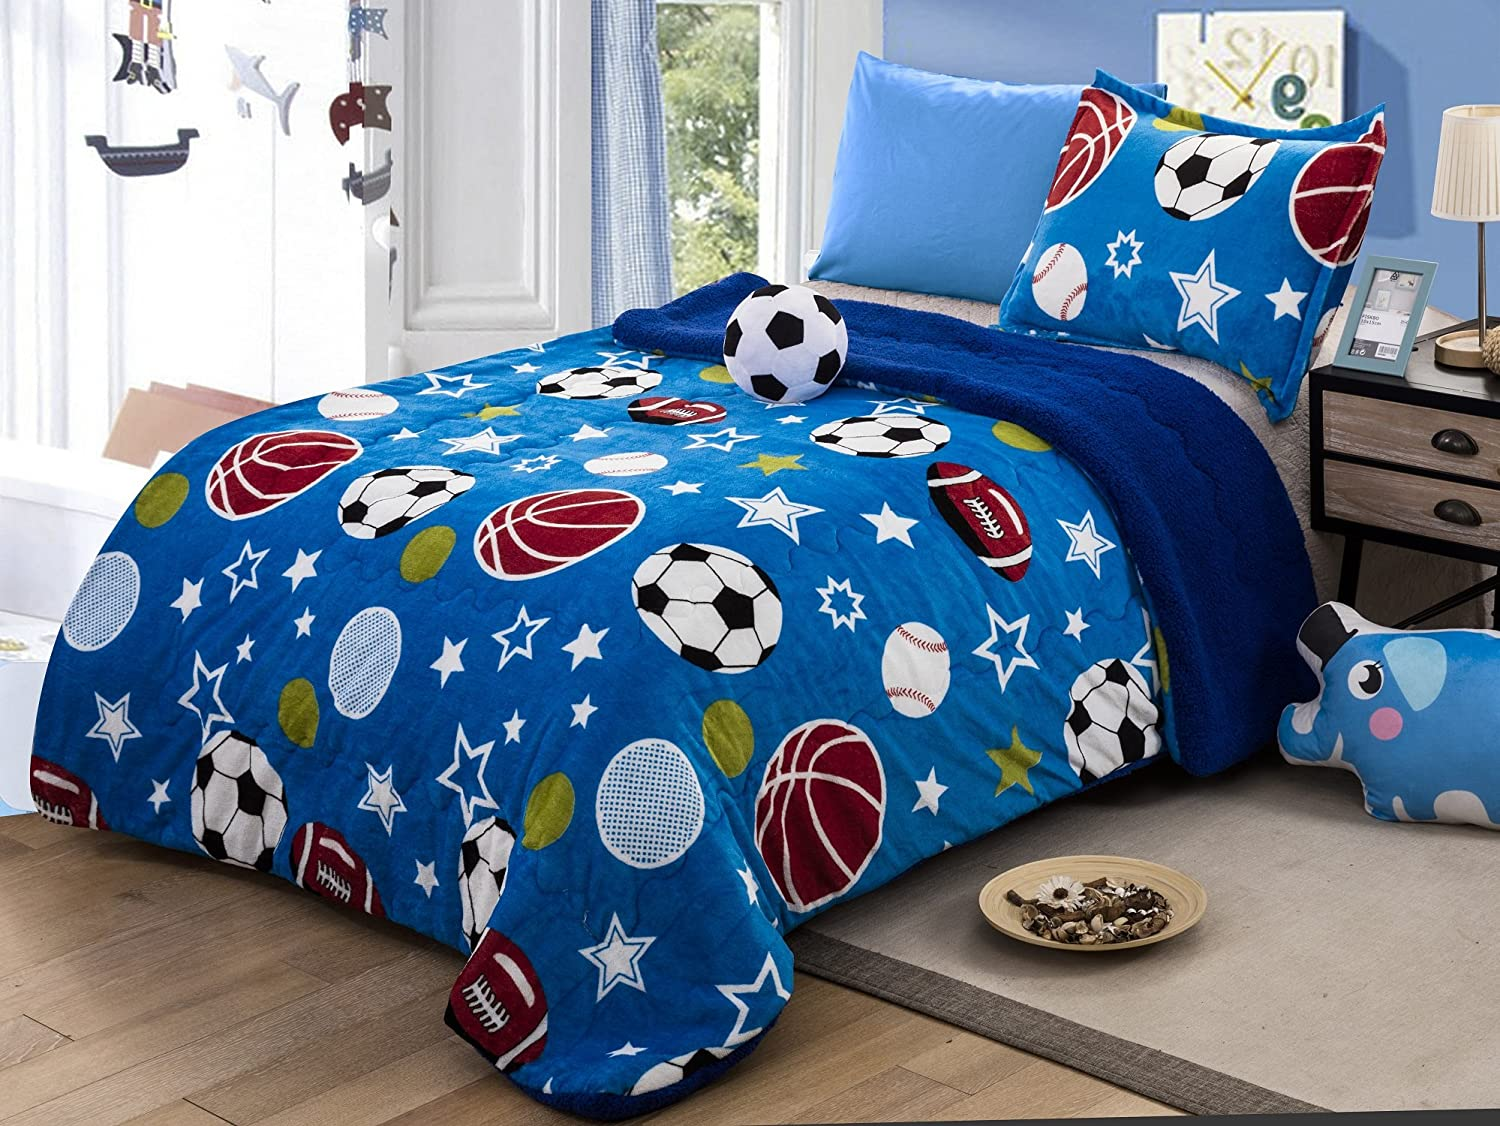 All American Collection New Super Soft and Warm 3 Piece Borrego/Sherpa Blanket with Pillow Sham and Cushion (Twin, Soccer Ball)